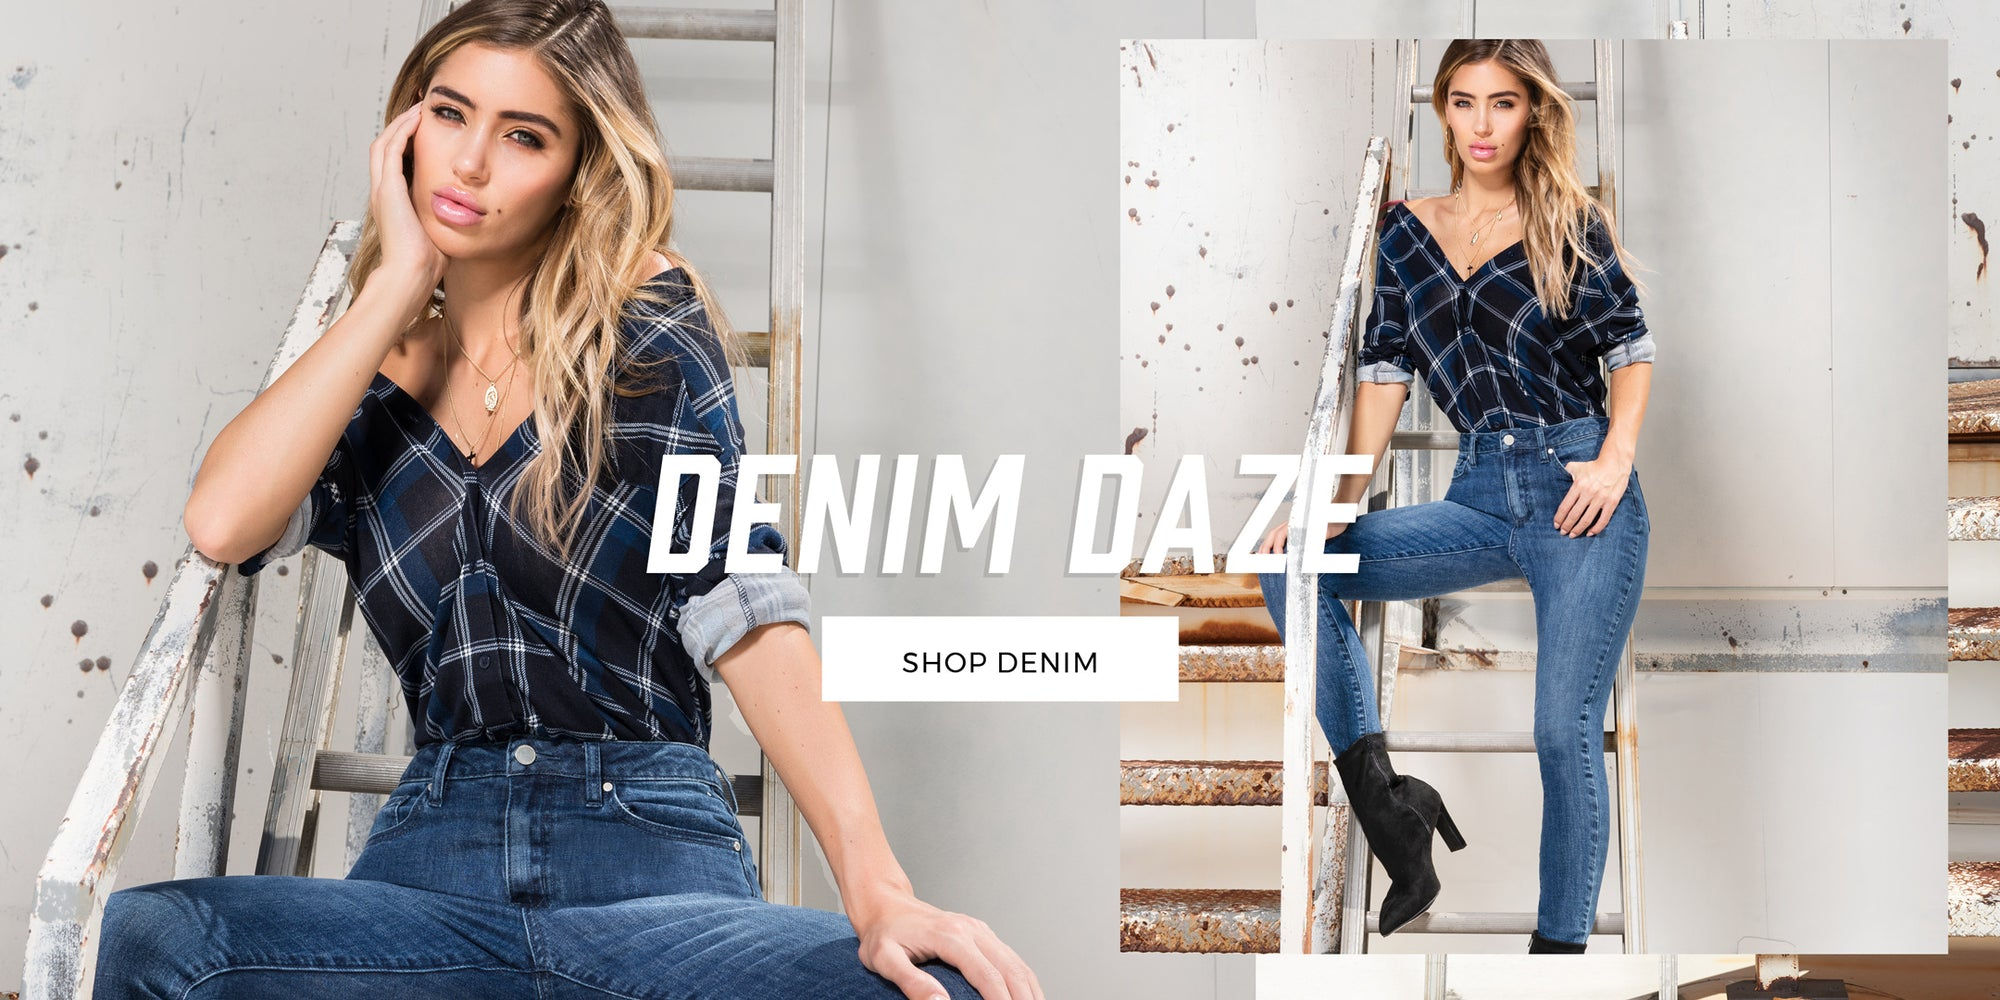 Denim Daze - Shop Denim